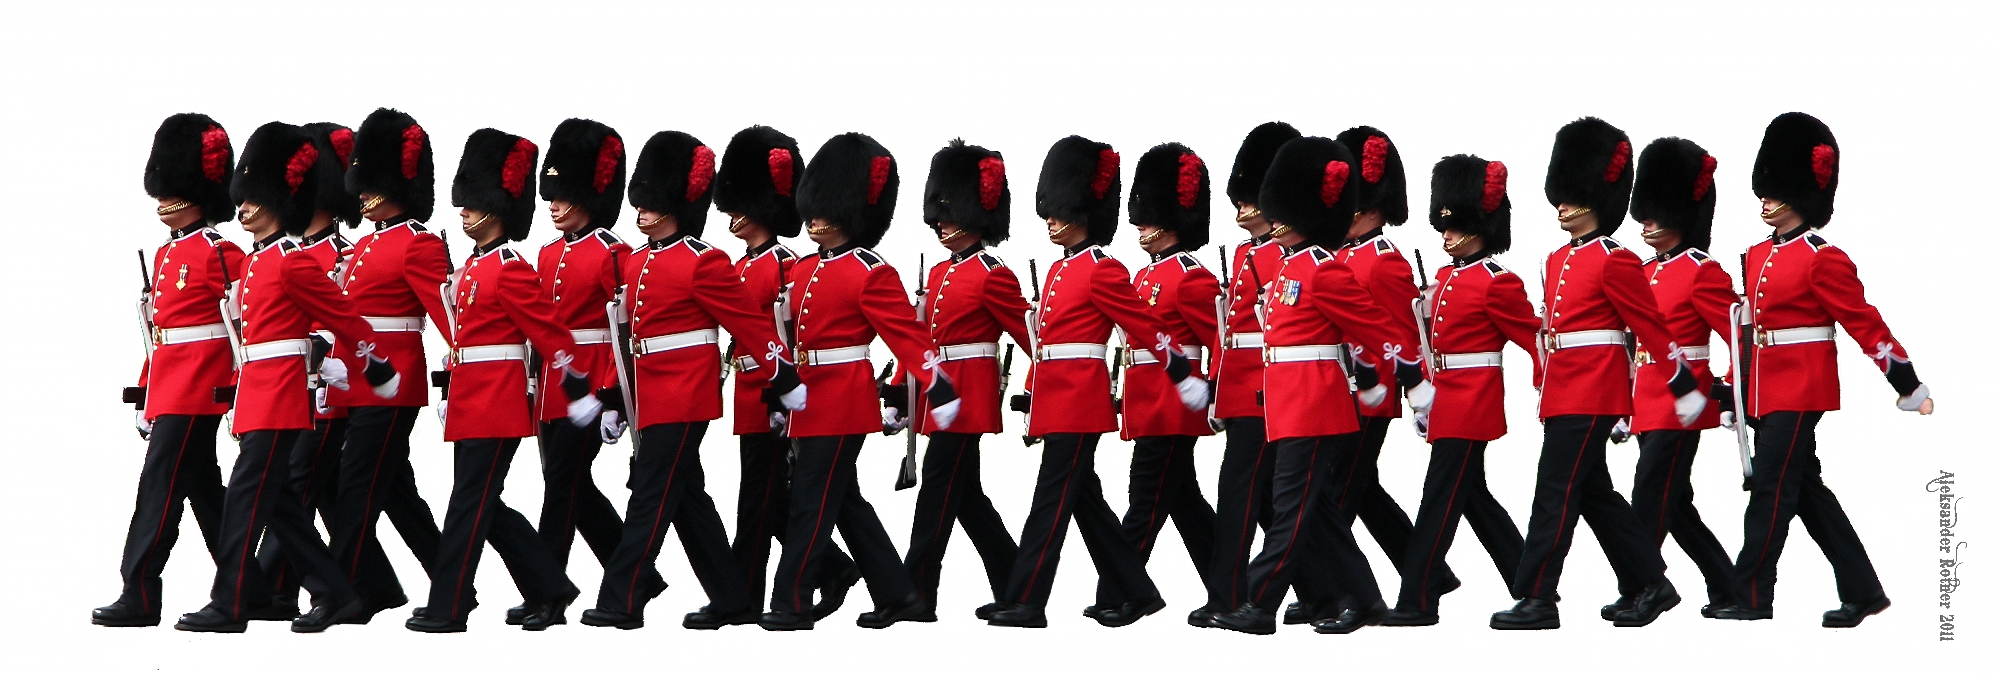 CanadianRoyalGuards  forWeb